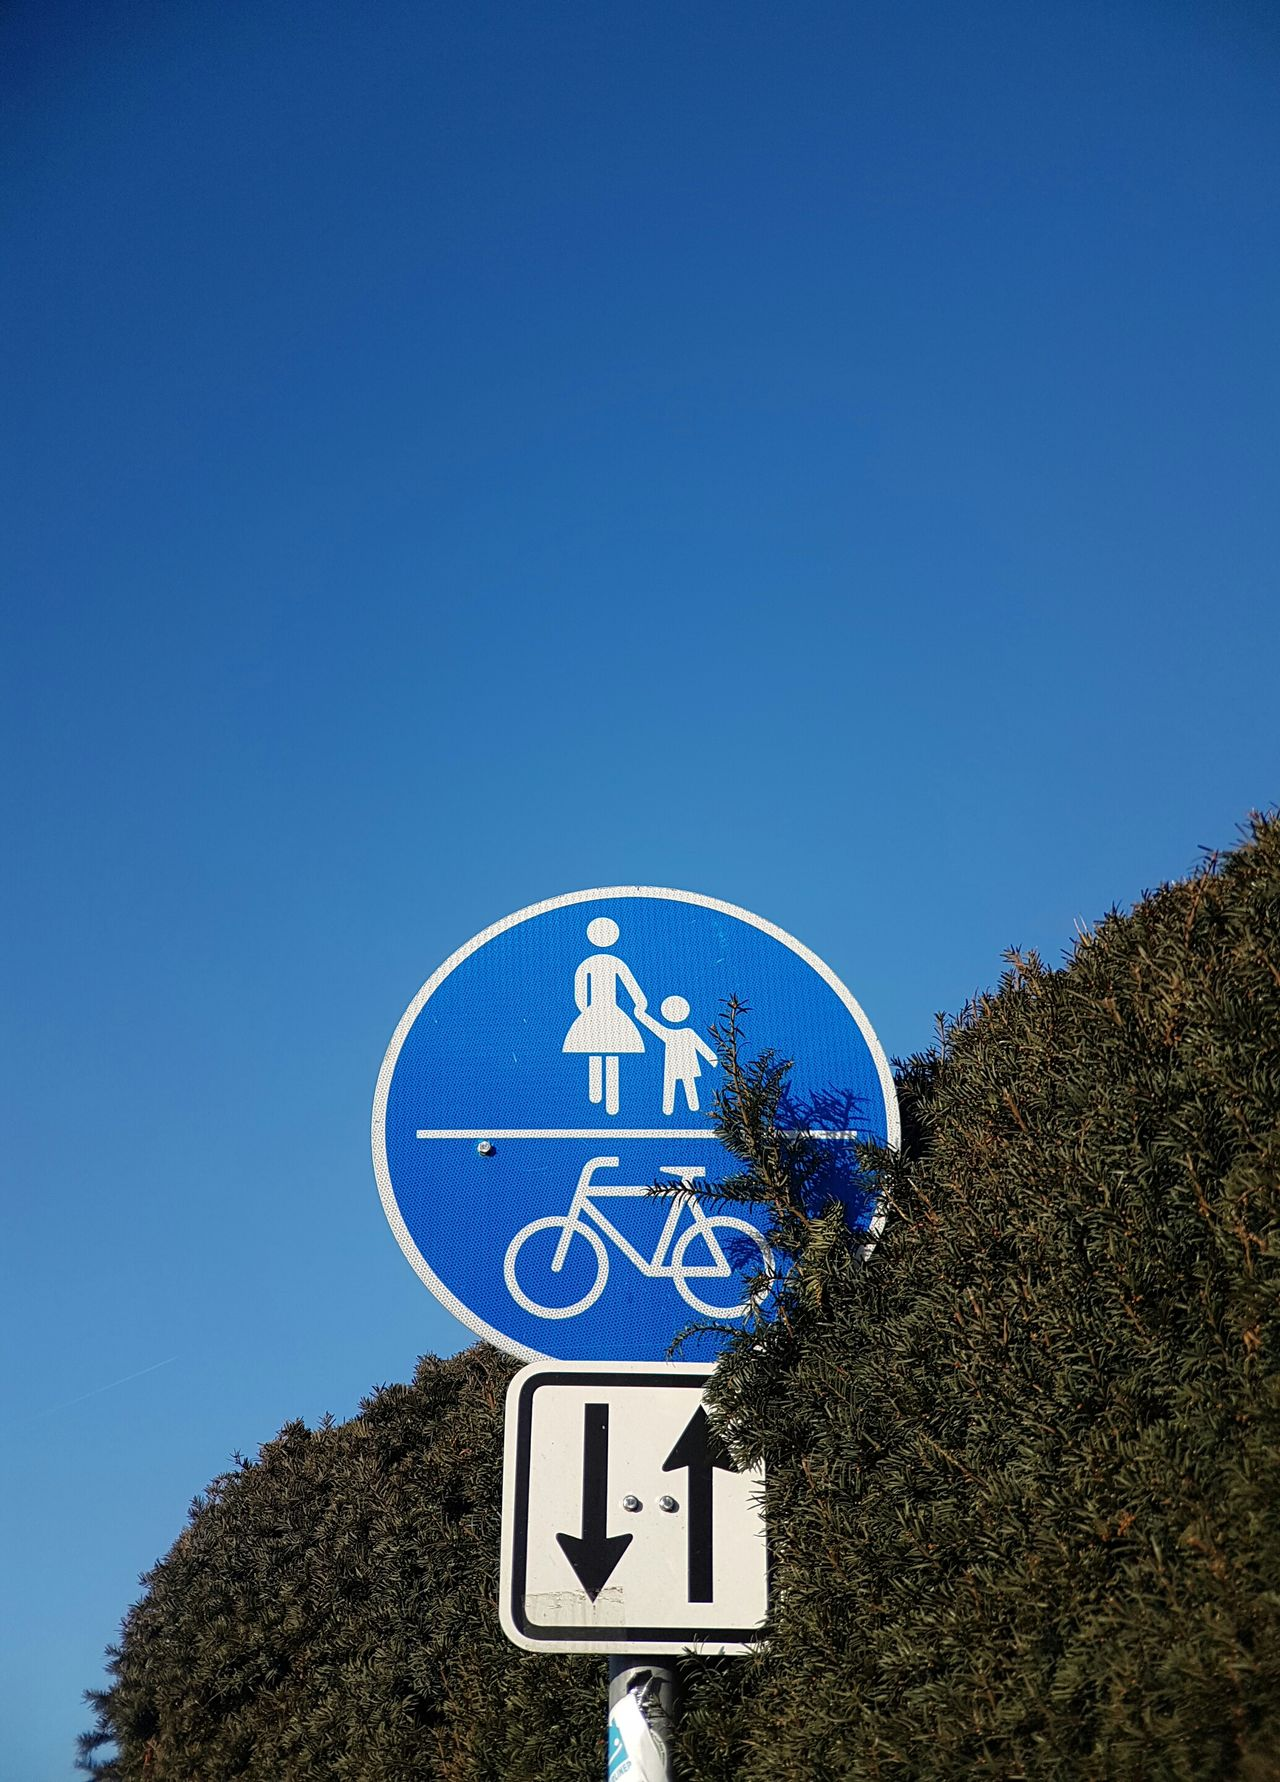 Blue Clear Sky No People Road Sign Road Signs Green Wall Background Walking Together Cover Walking Around The City  Straight Lines Arrow Sign Street Signs Attention Street Sign Bycicle Ride Signs Signs_collection Walking Around Walking Together Logo Bycicle Road Cycling Around Adapted To The City